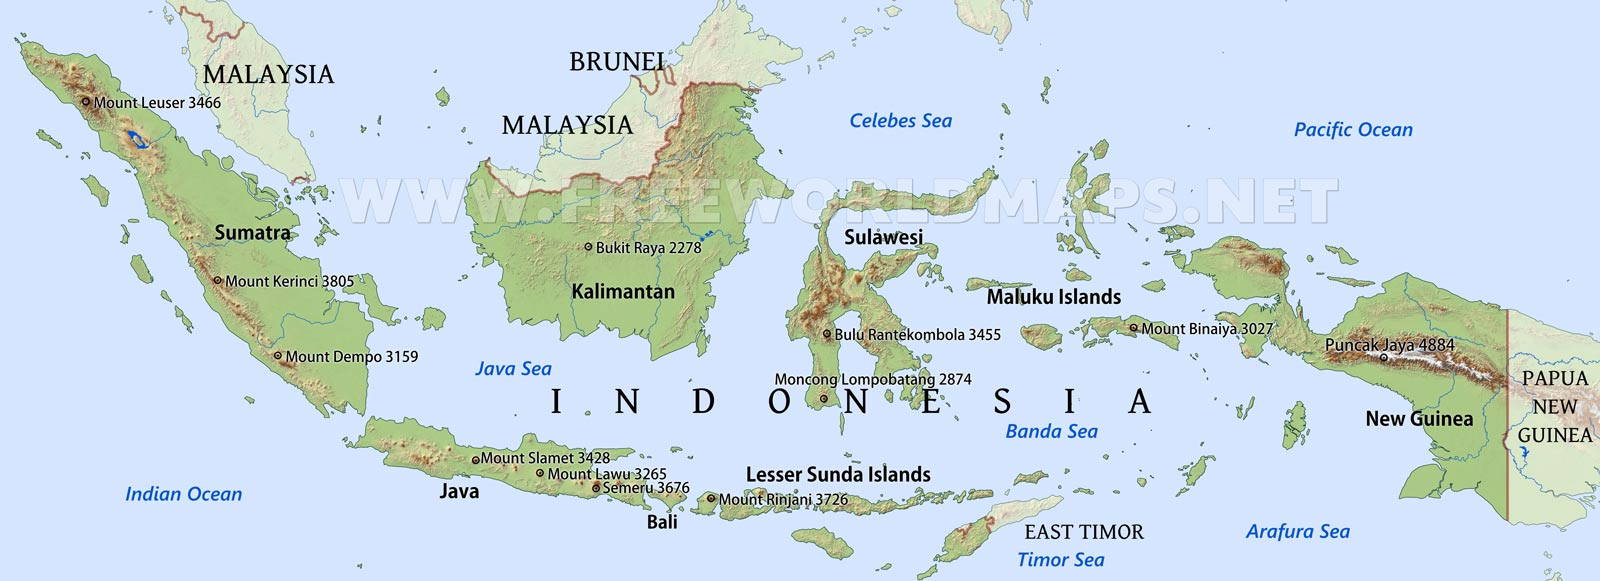 Indonesia Map Images Indonesia Physical Map